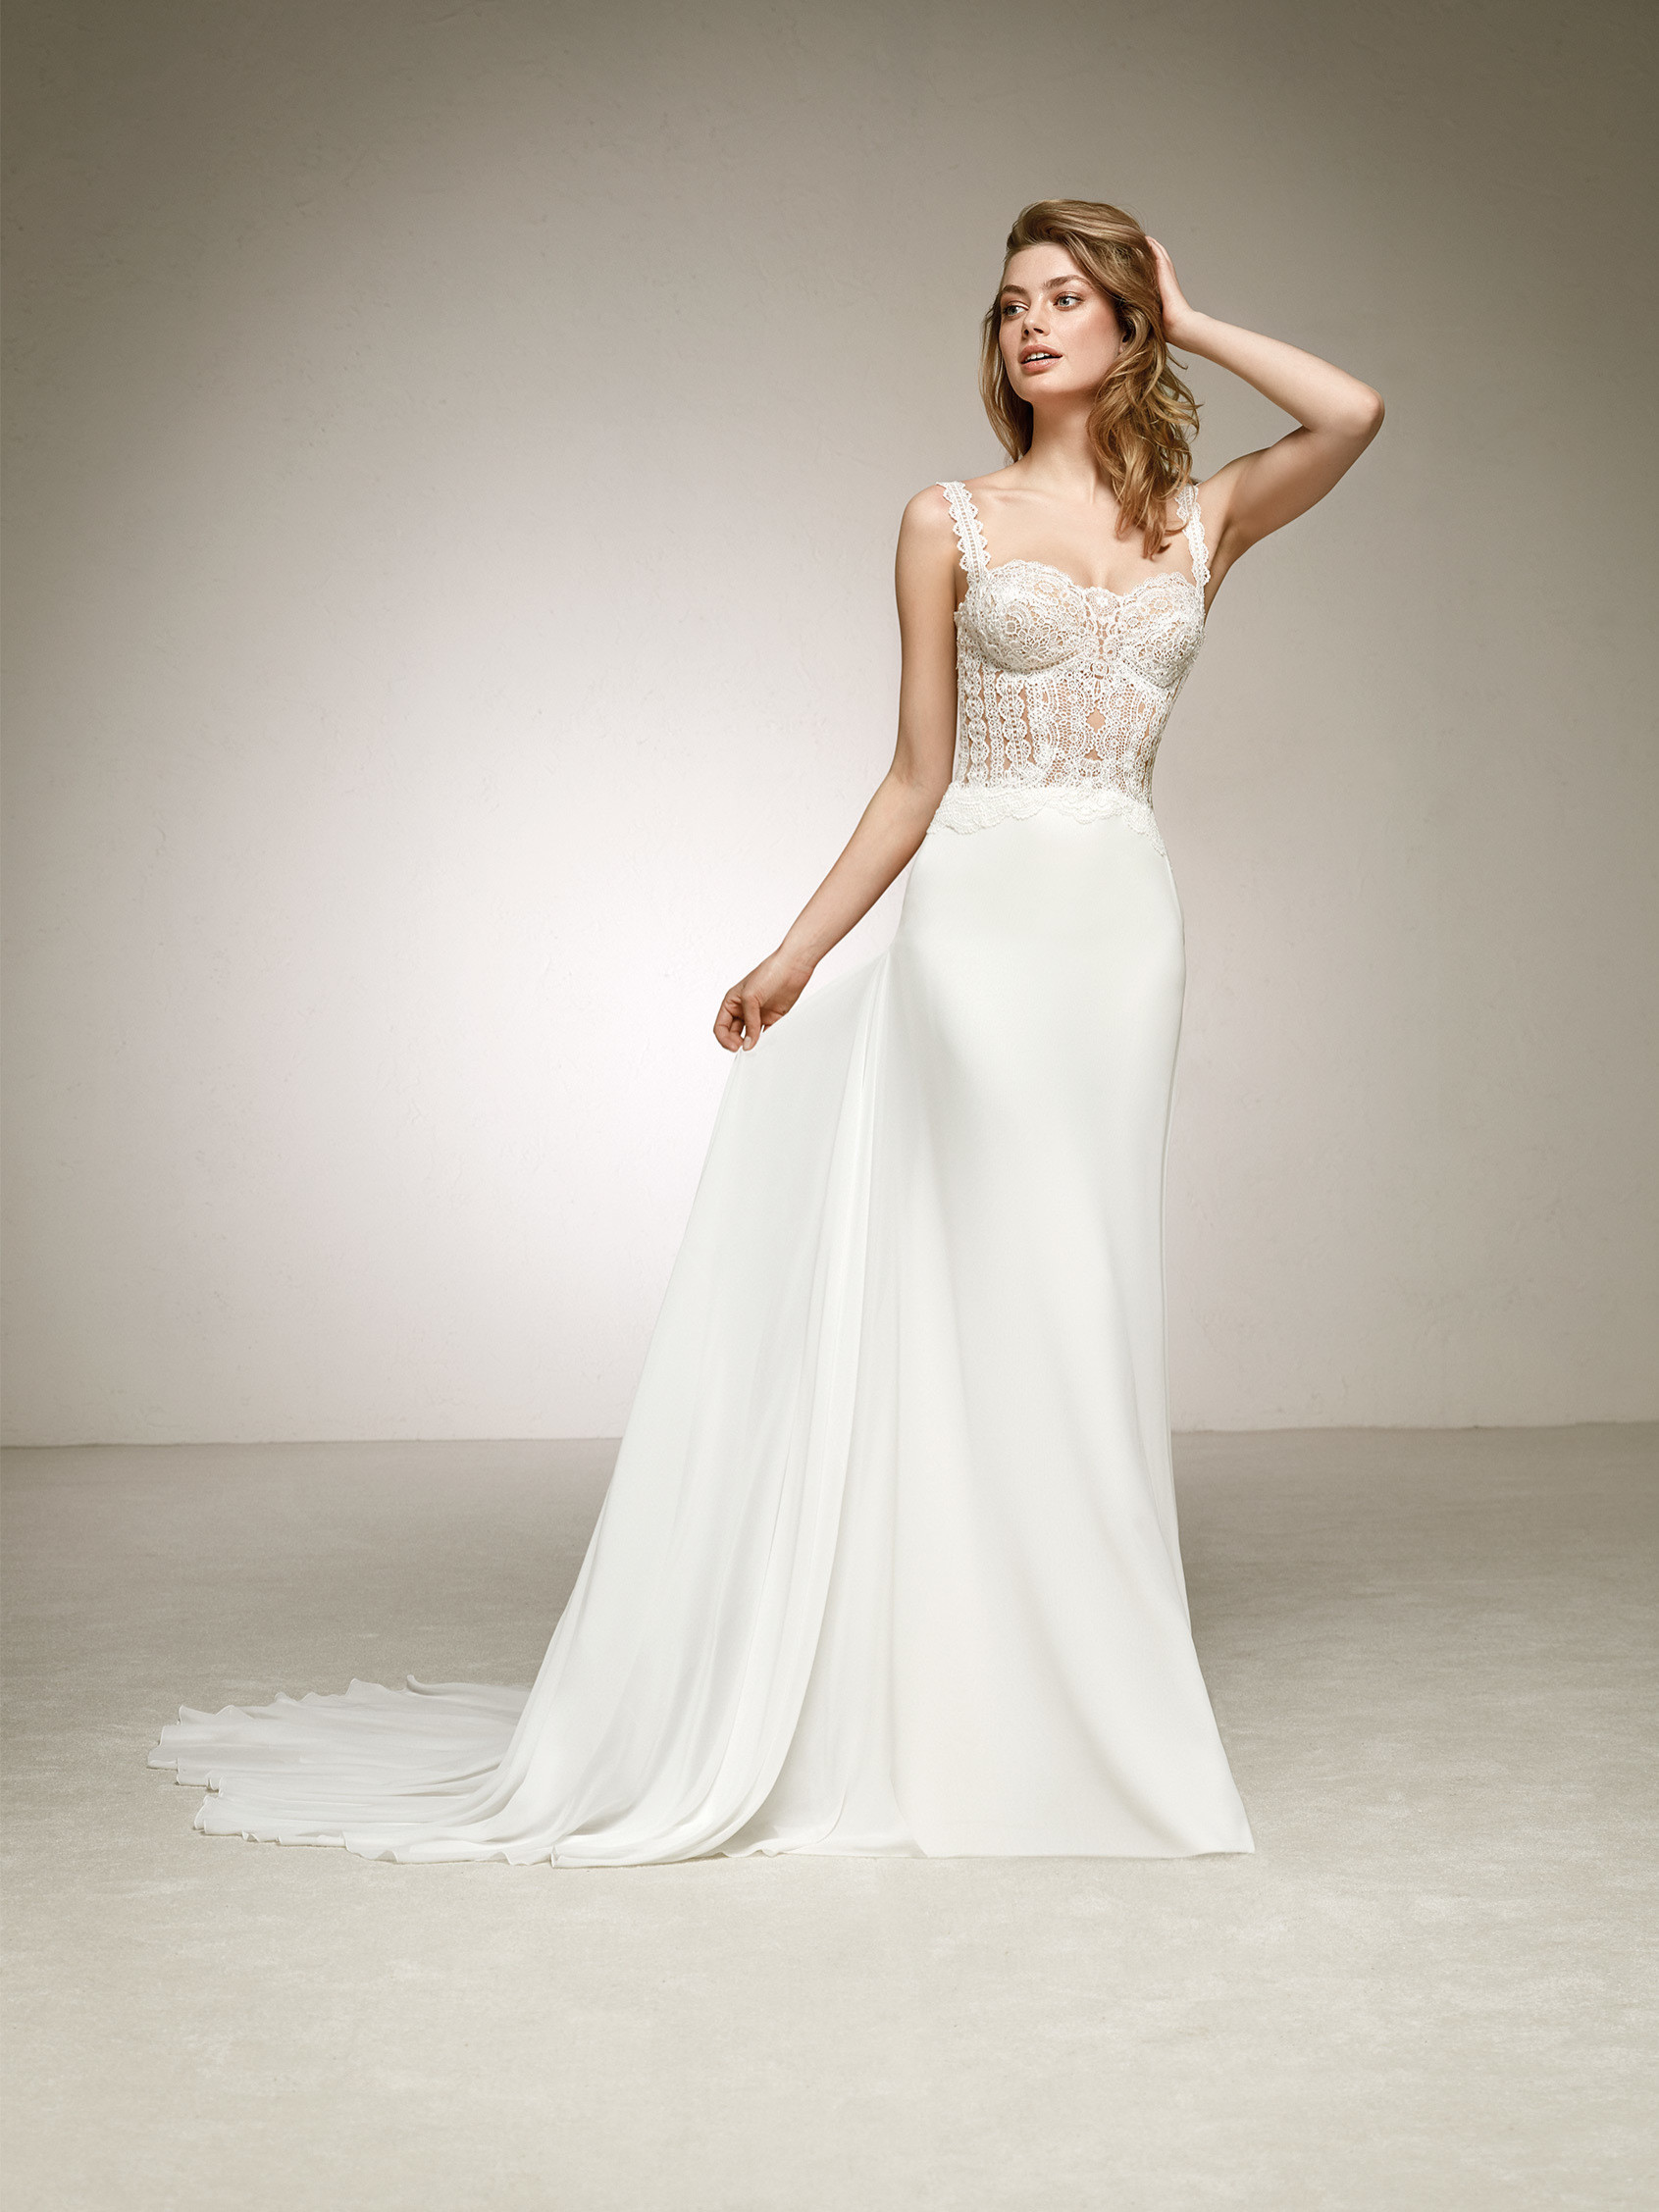 Romantic wedding dress with simple lines. DANESA | Pronovias 2018 ...